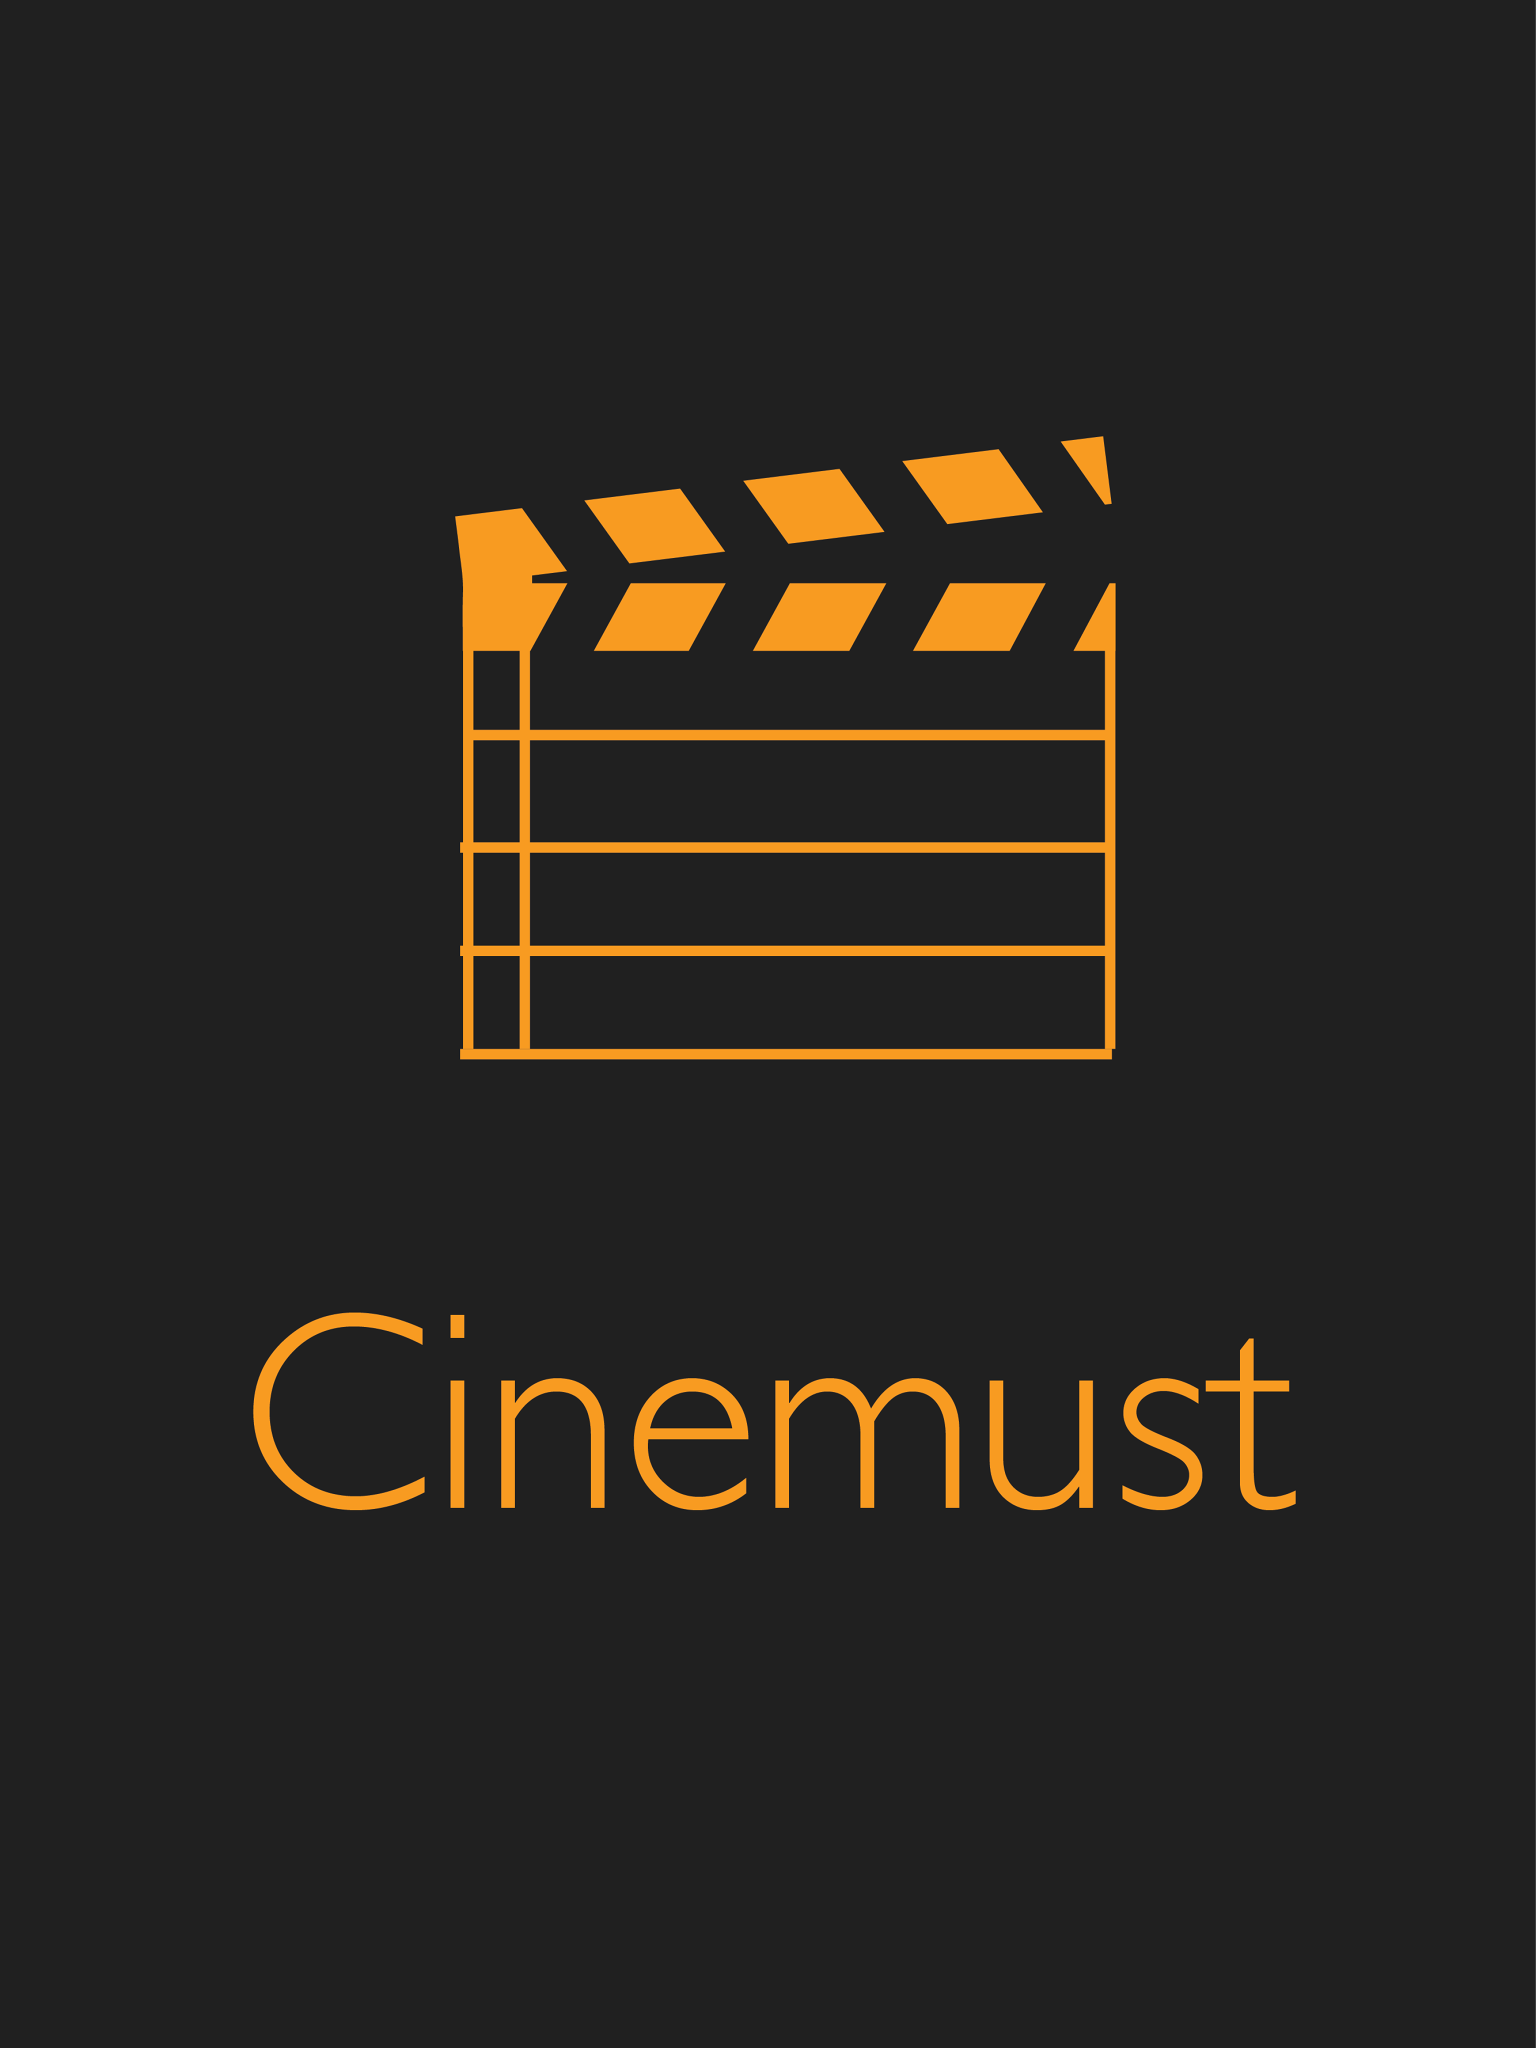 Index of /kingsc/Cinemust/platforms/ios/Cinemust/Images.xcassets.